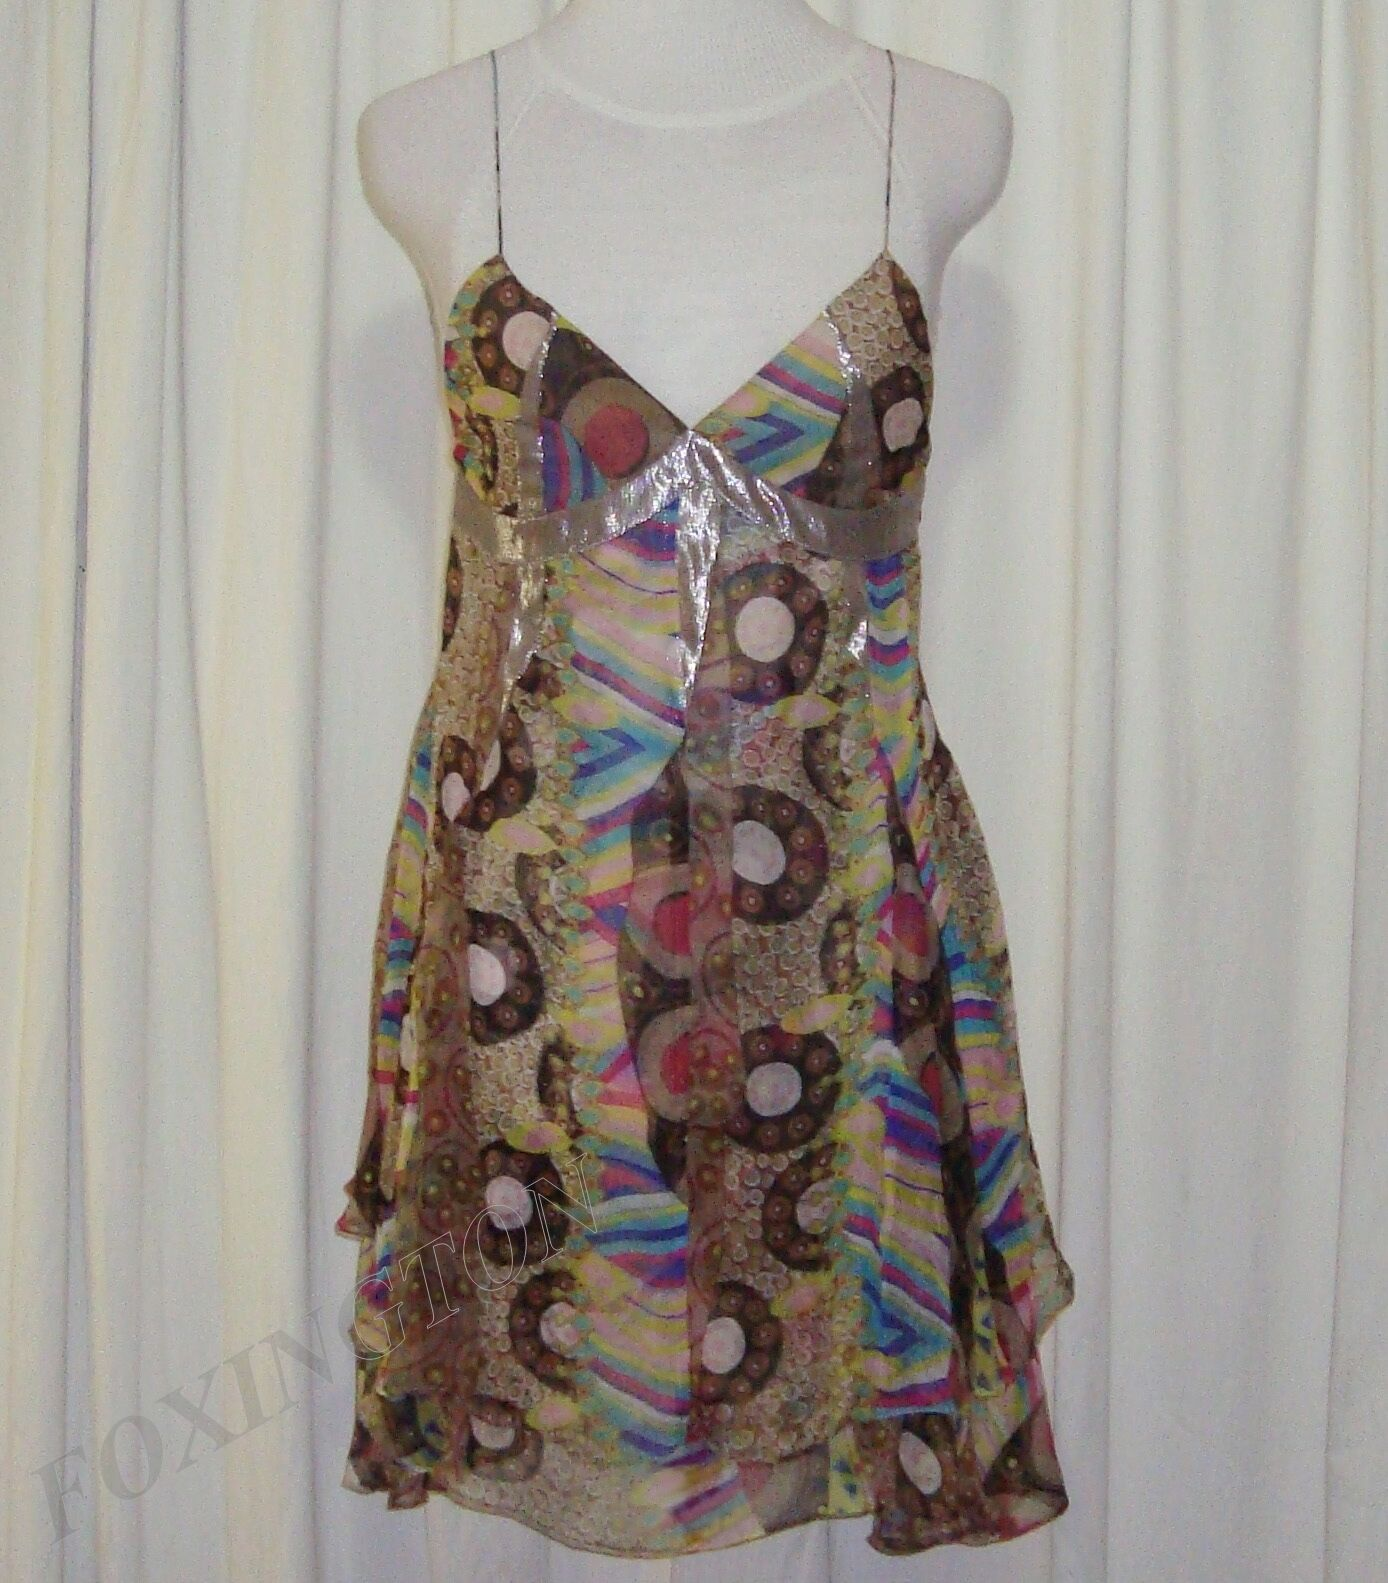 SASS&BIDE PATTERNED SILK LAYErouge Robe 40 4 (AUS 8 10) CROSSING THE LINE